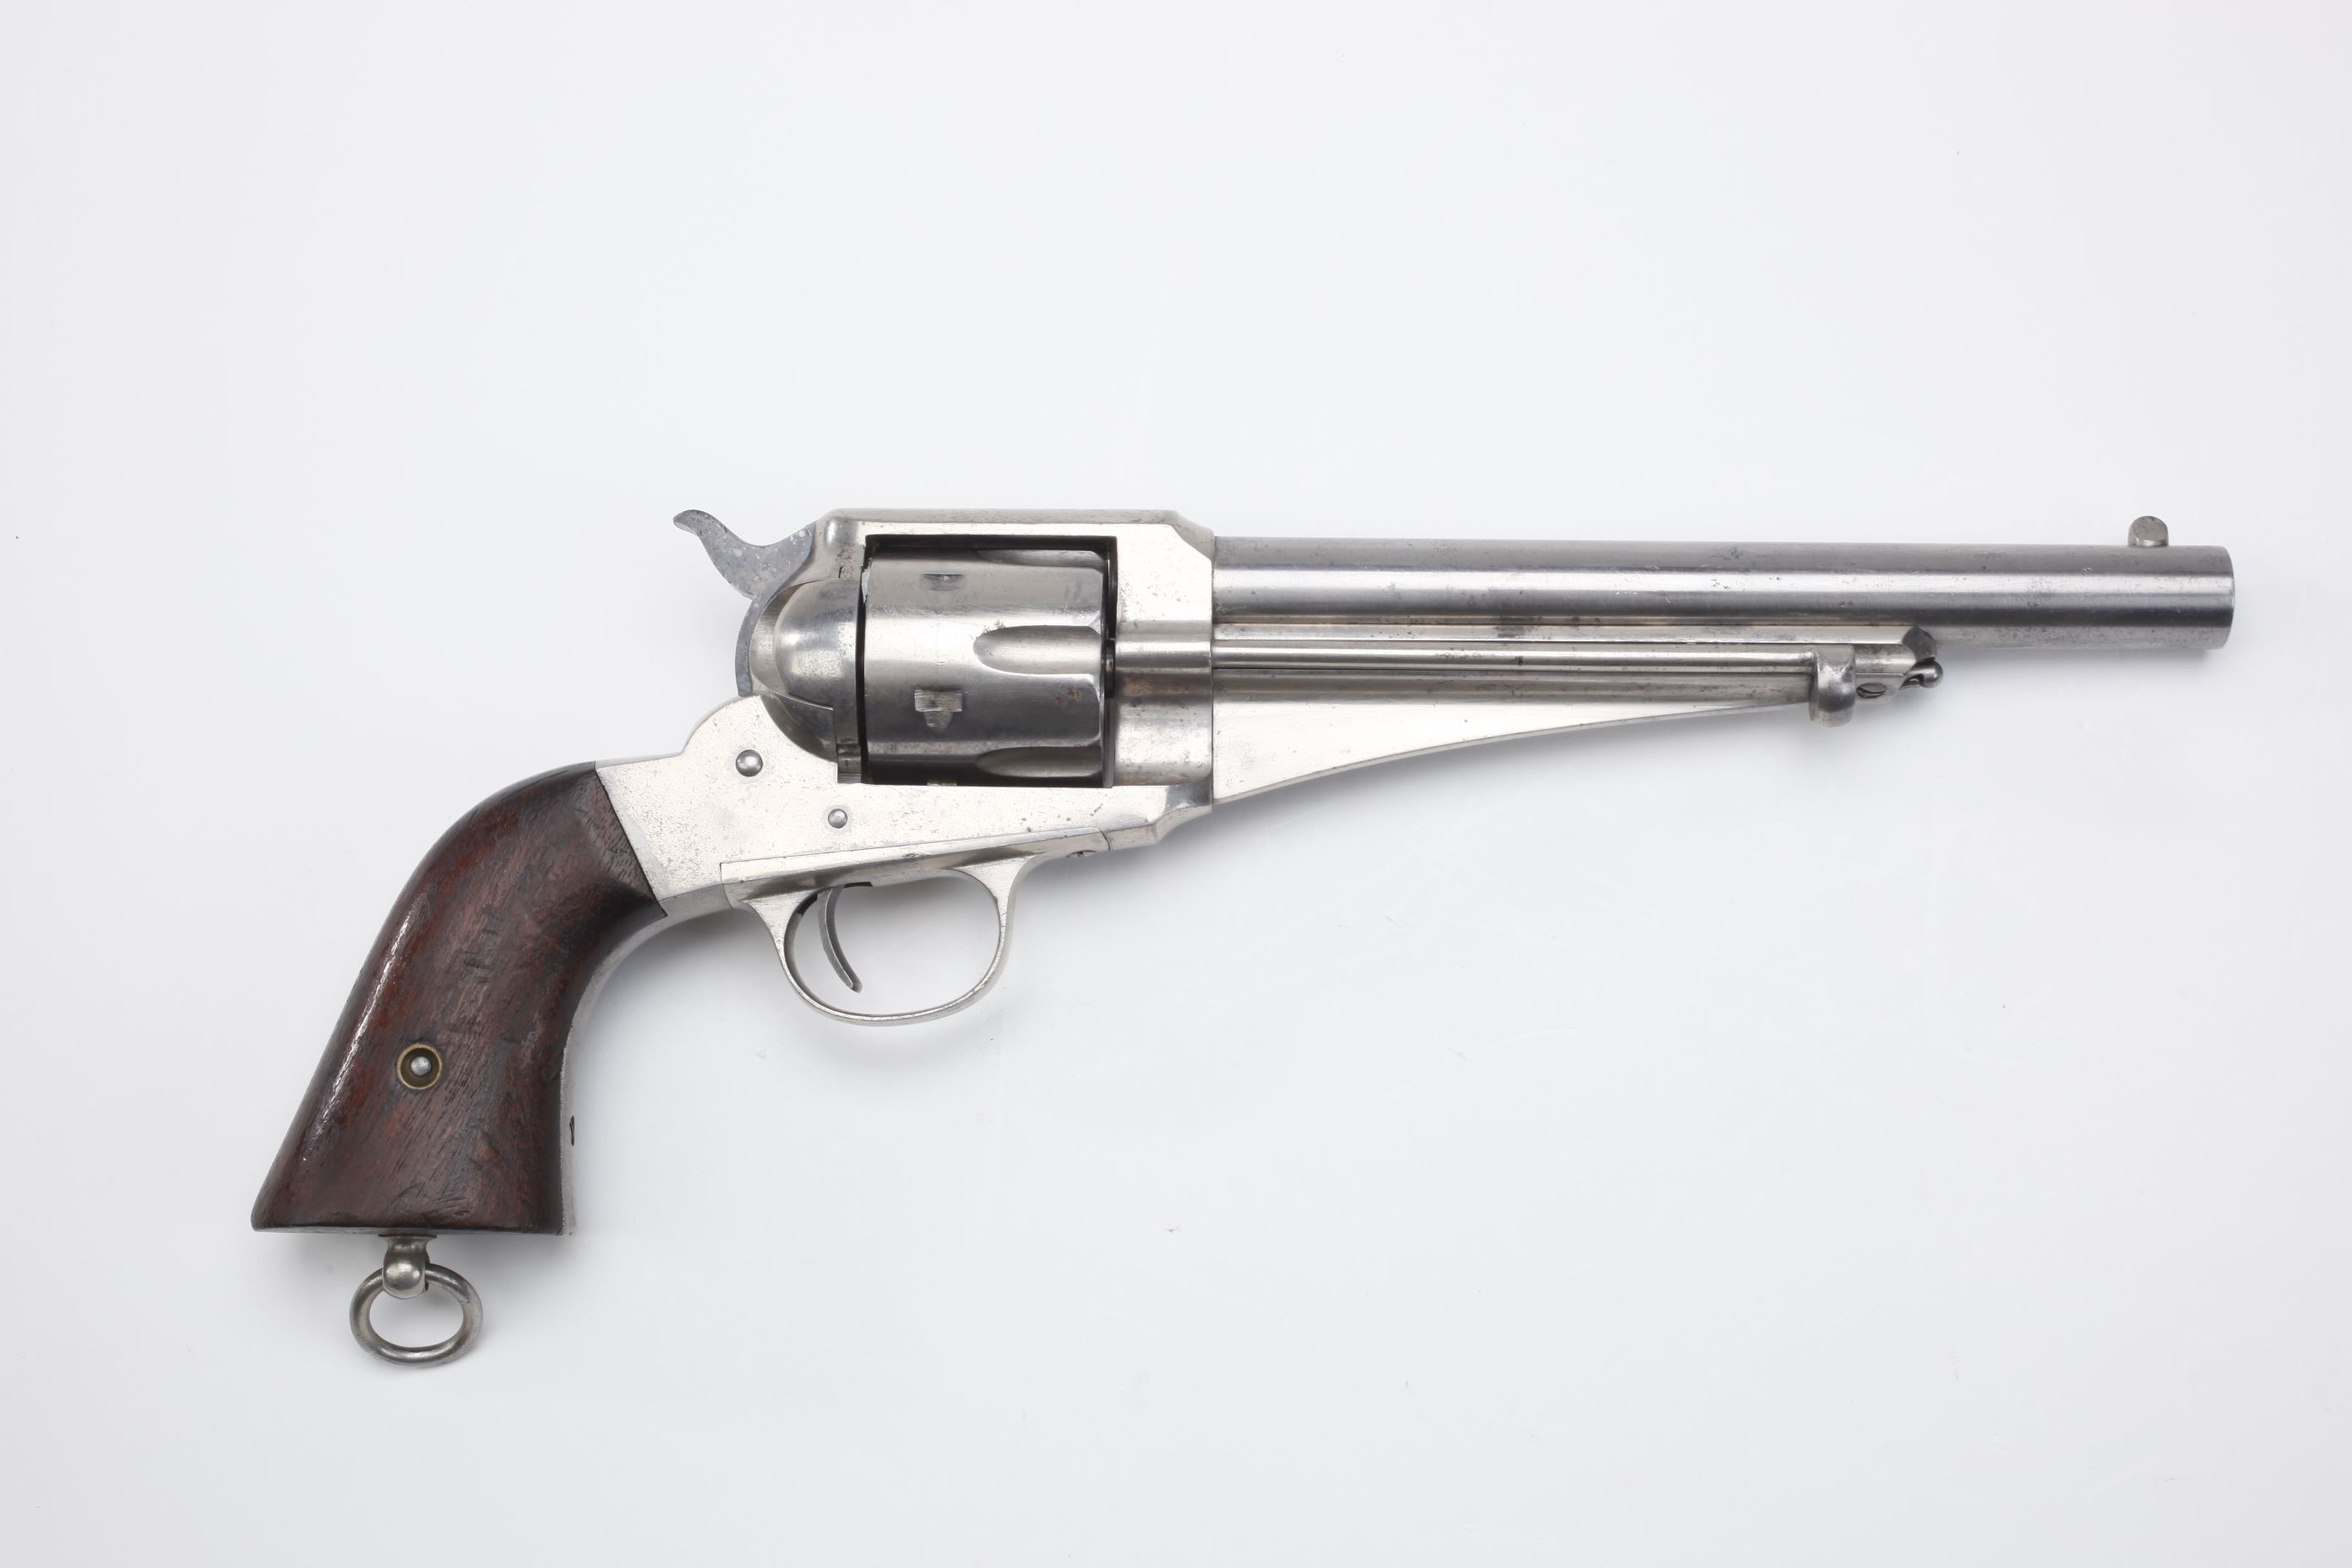 Remington Model 1875 Single Action Army Revolver